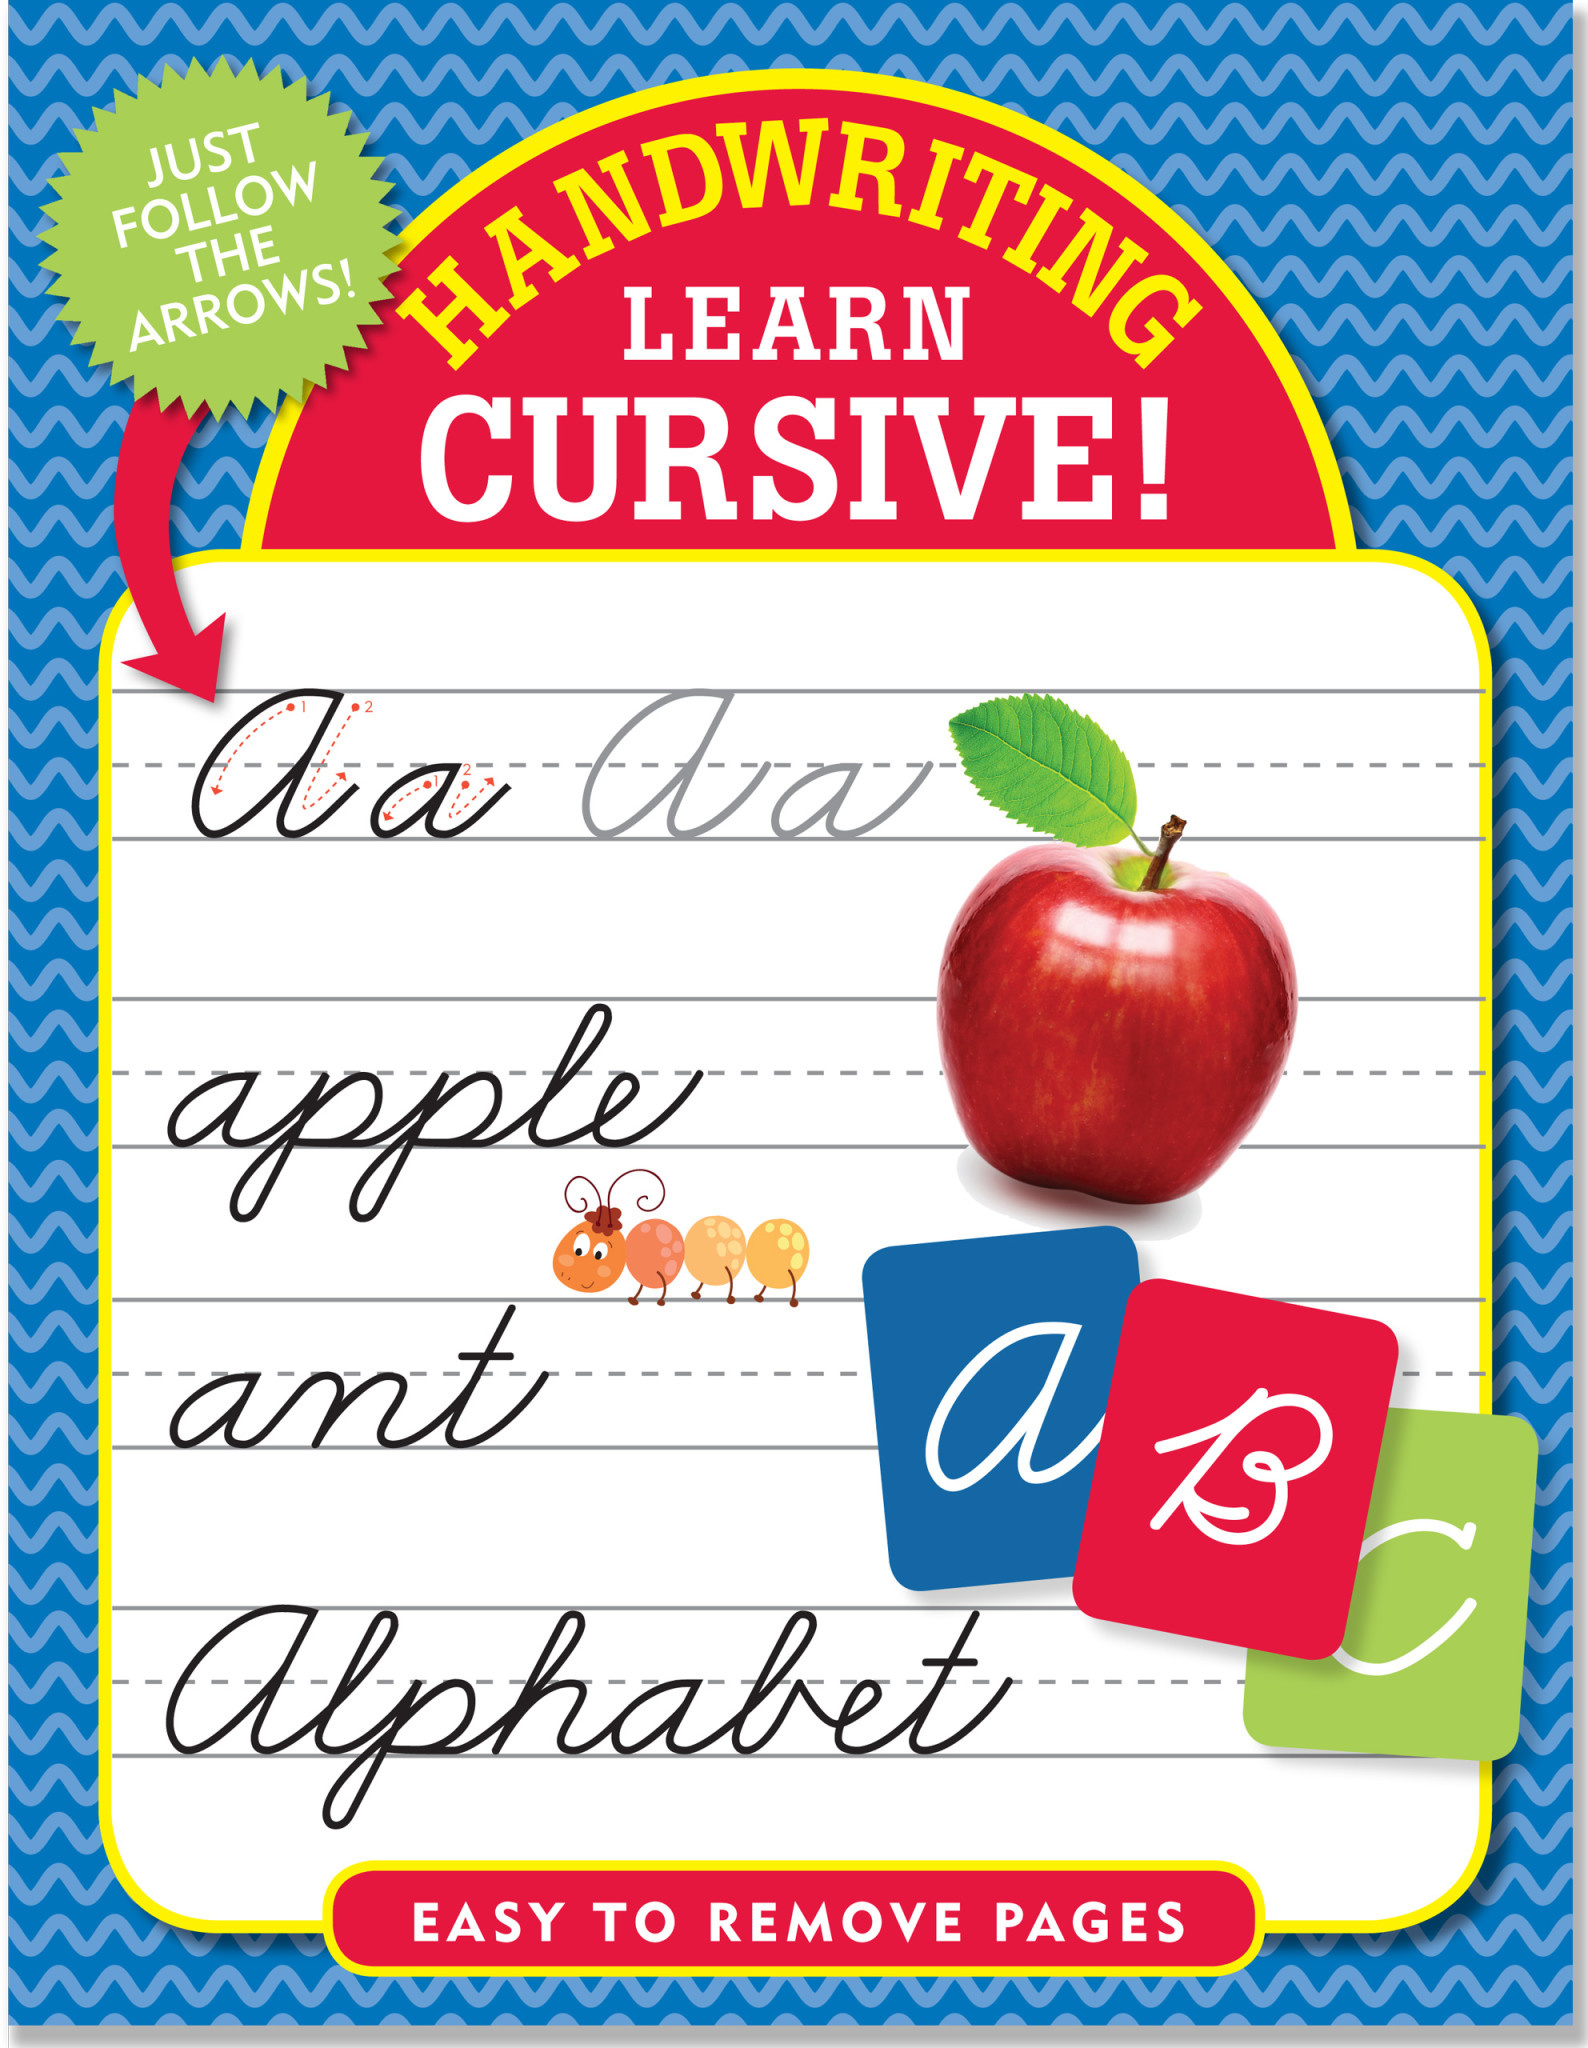 Handwriting - Learn Cursive